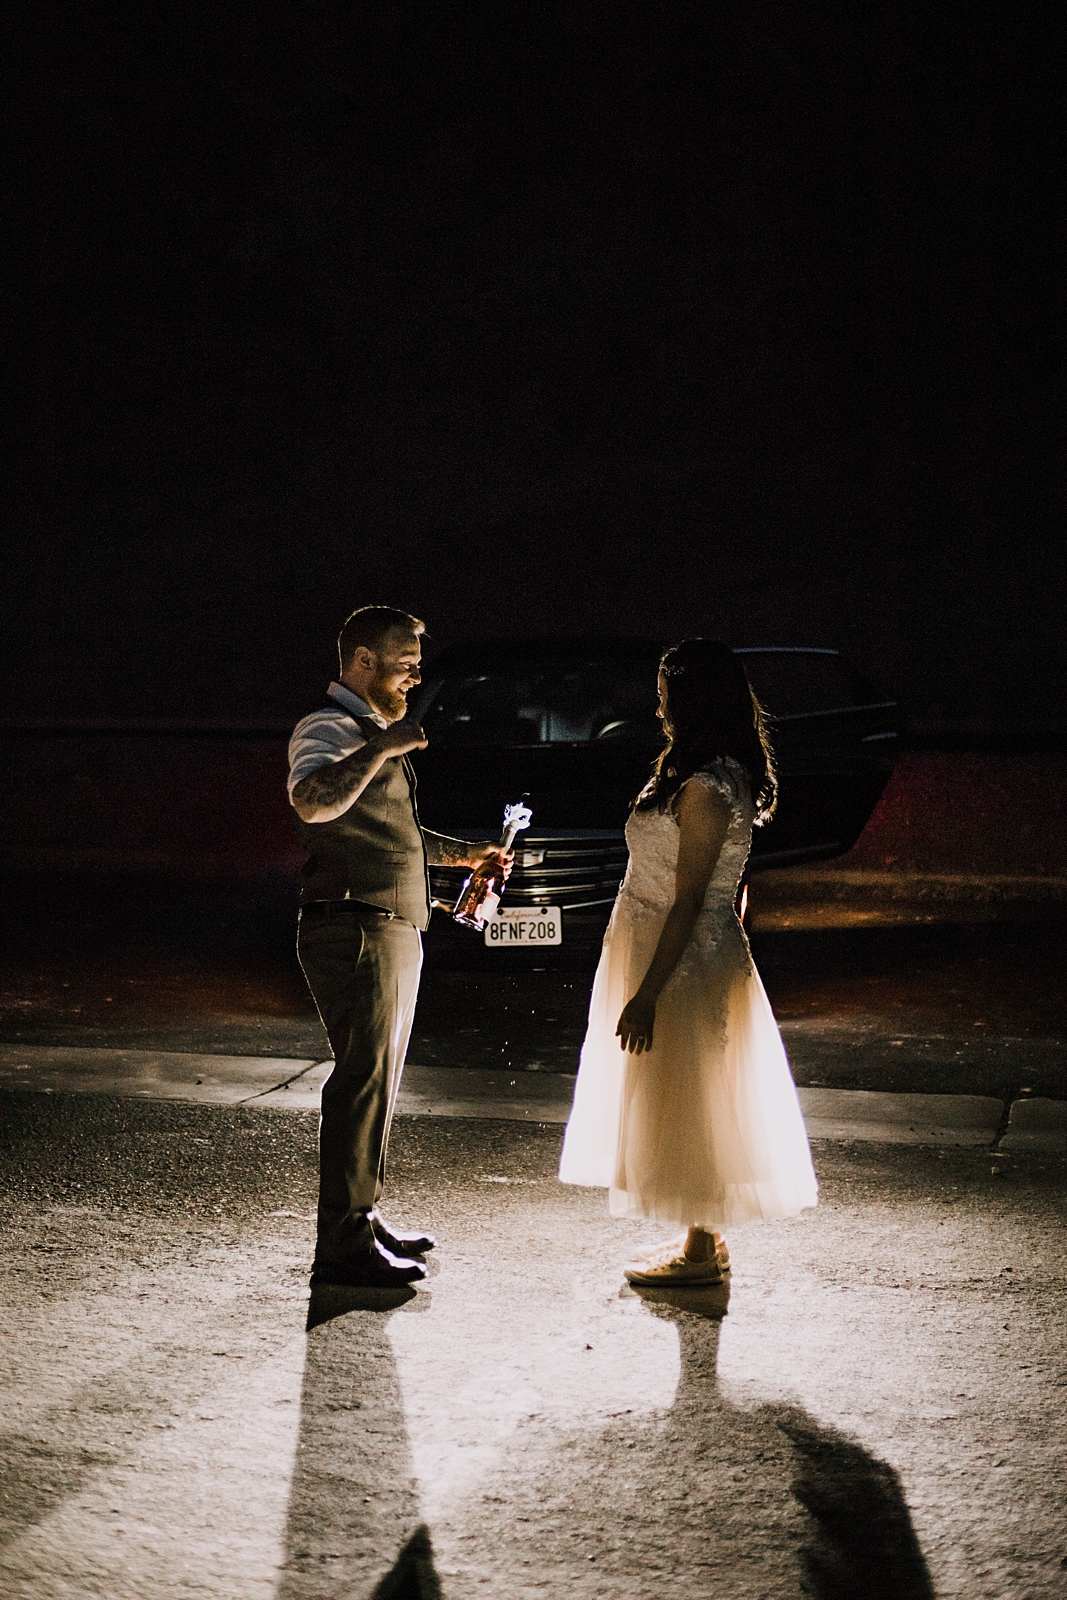 popping champagne to toast, death valley national park elopement, elope in death valley, badwater basin elopement, hiking in death valley national park, sunset at badwater basin